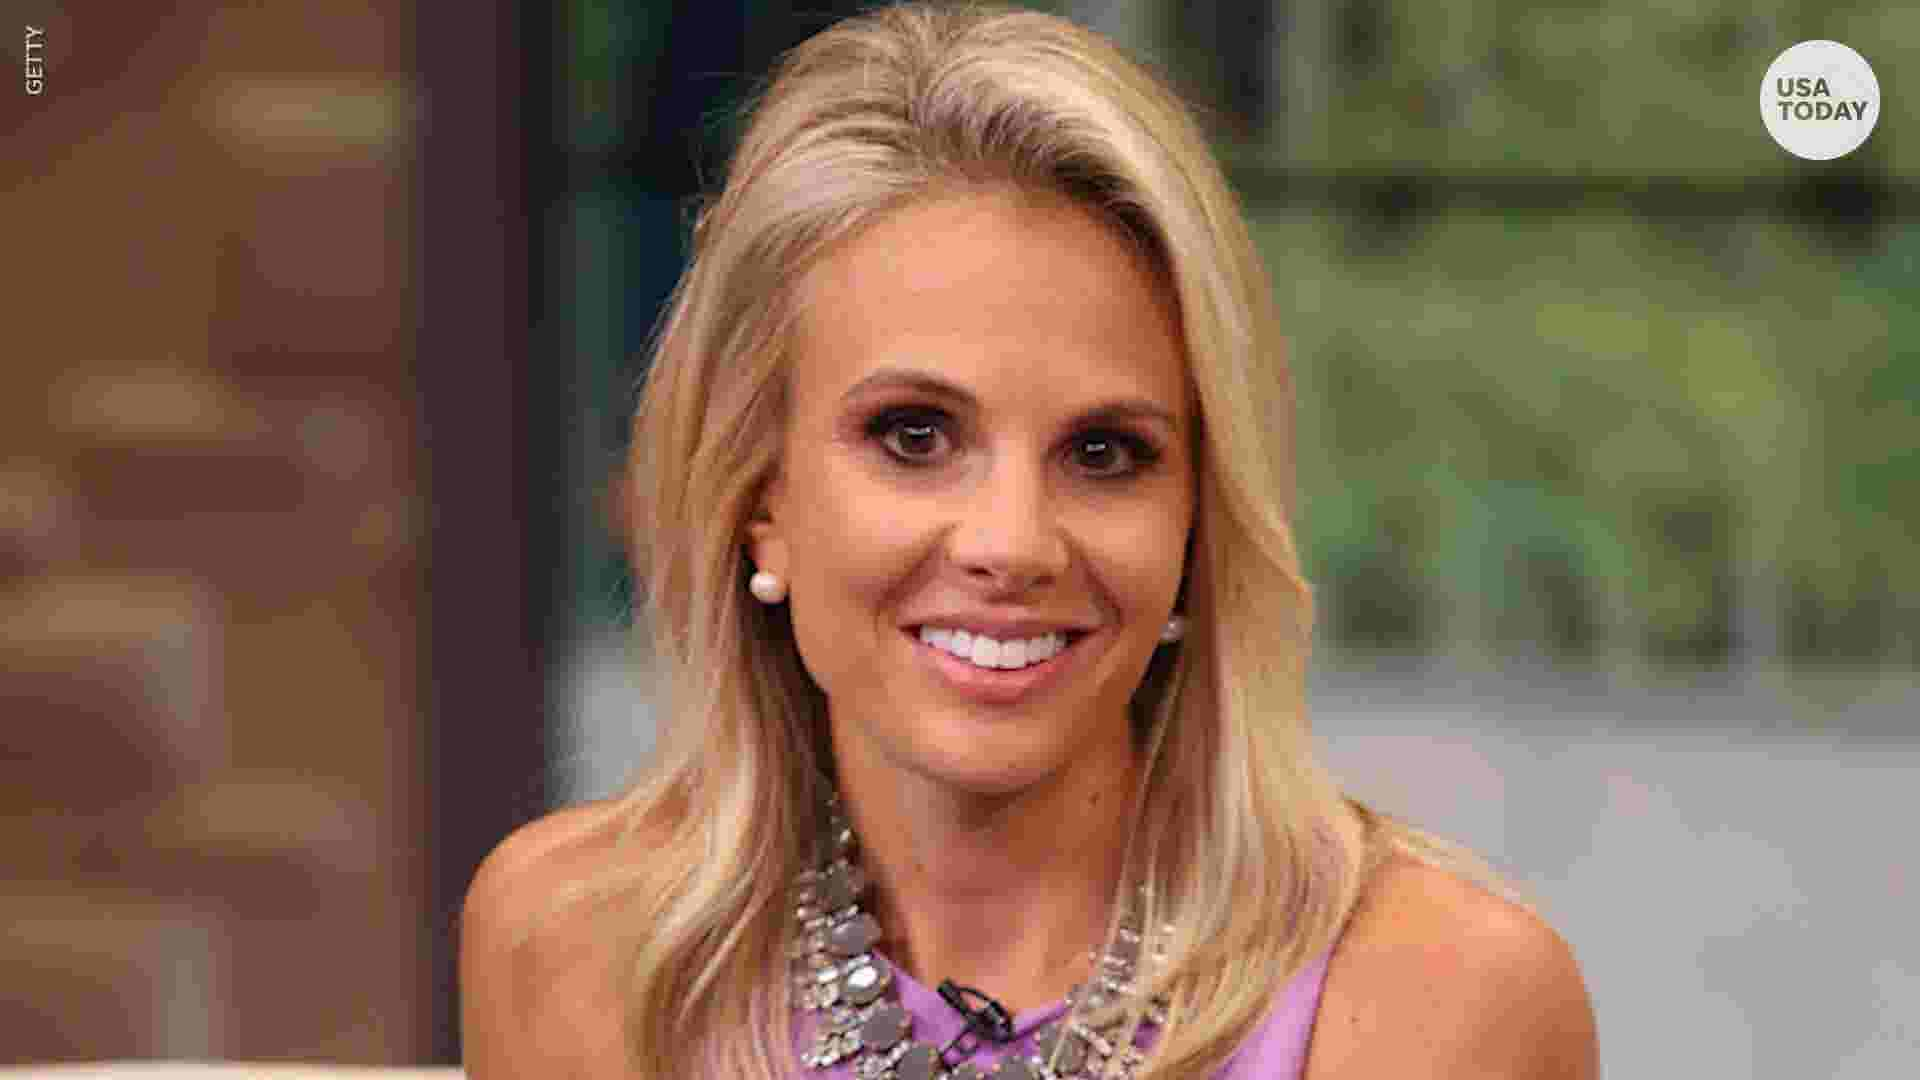 b9550a460a301 Elisabeth Hasselbeck dishes on 'View' firing, co-hosts in new book